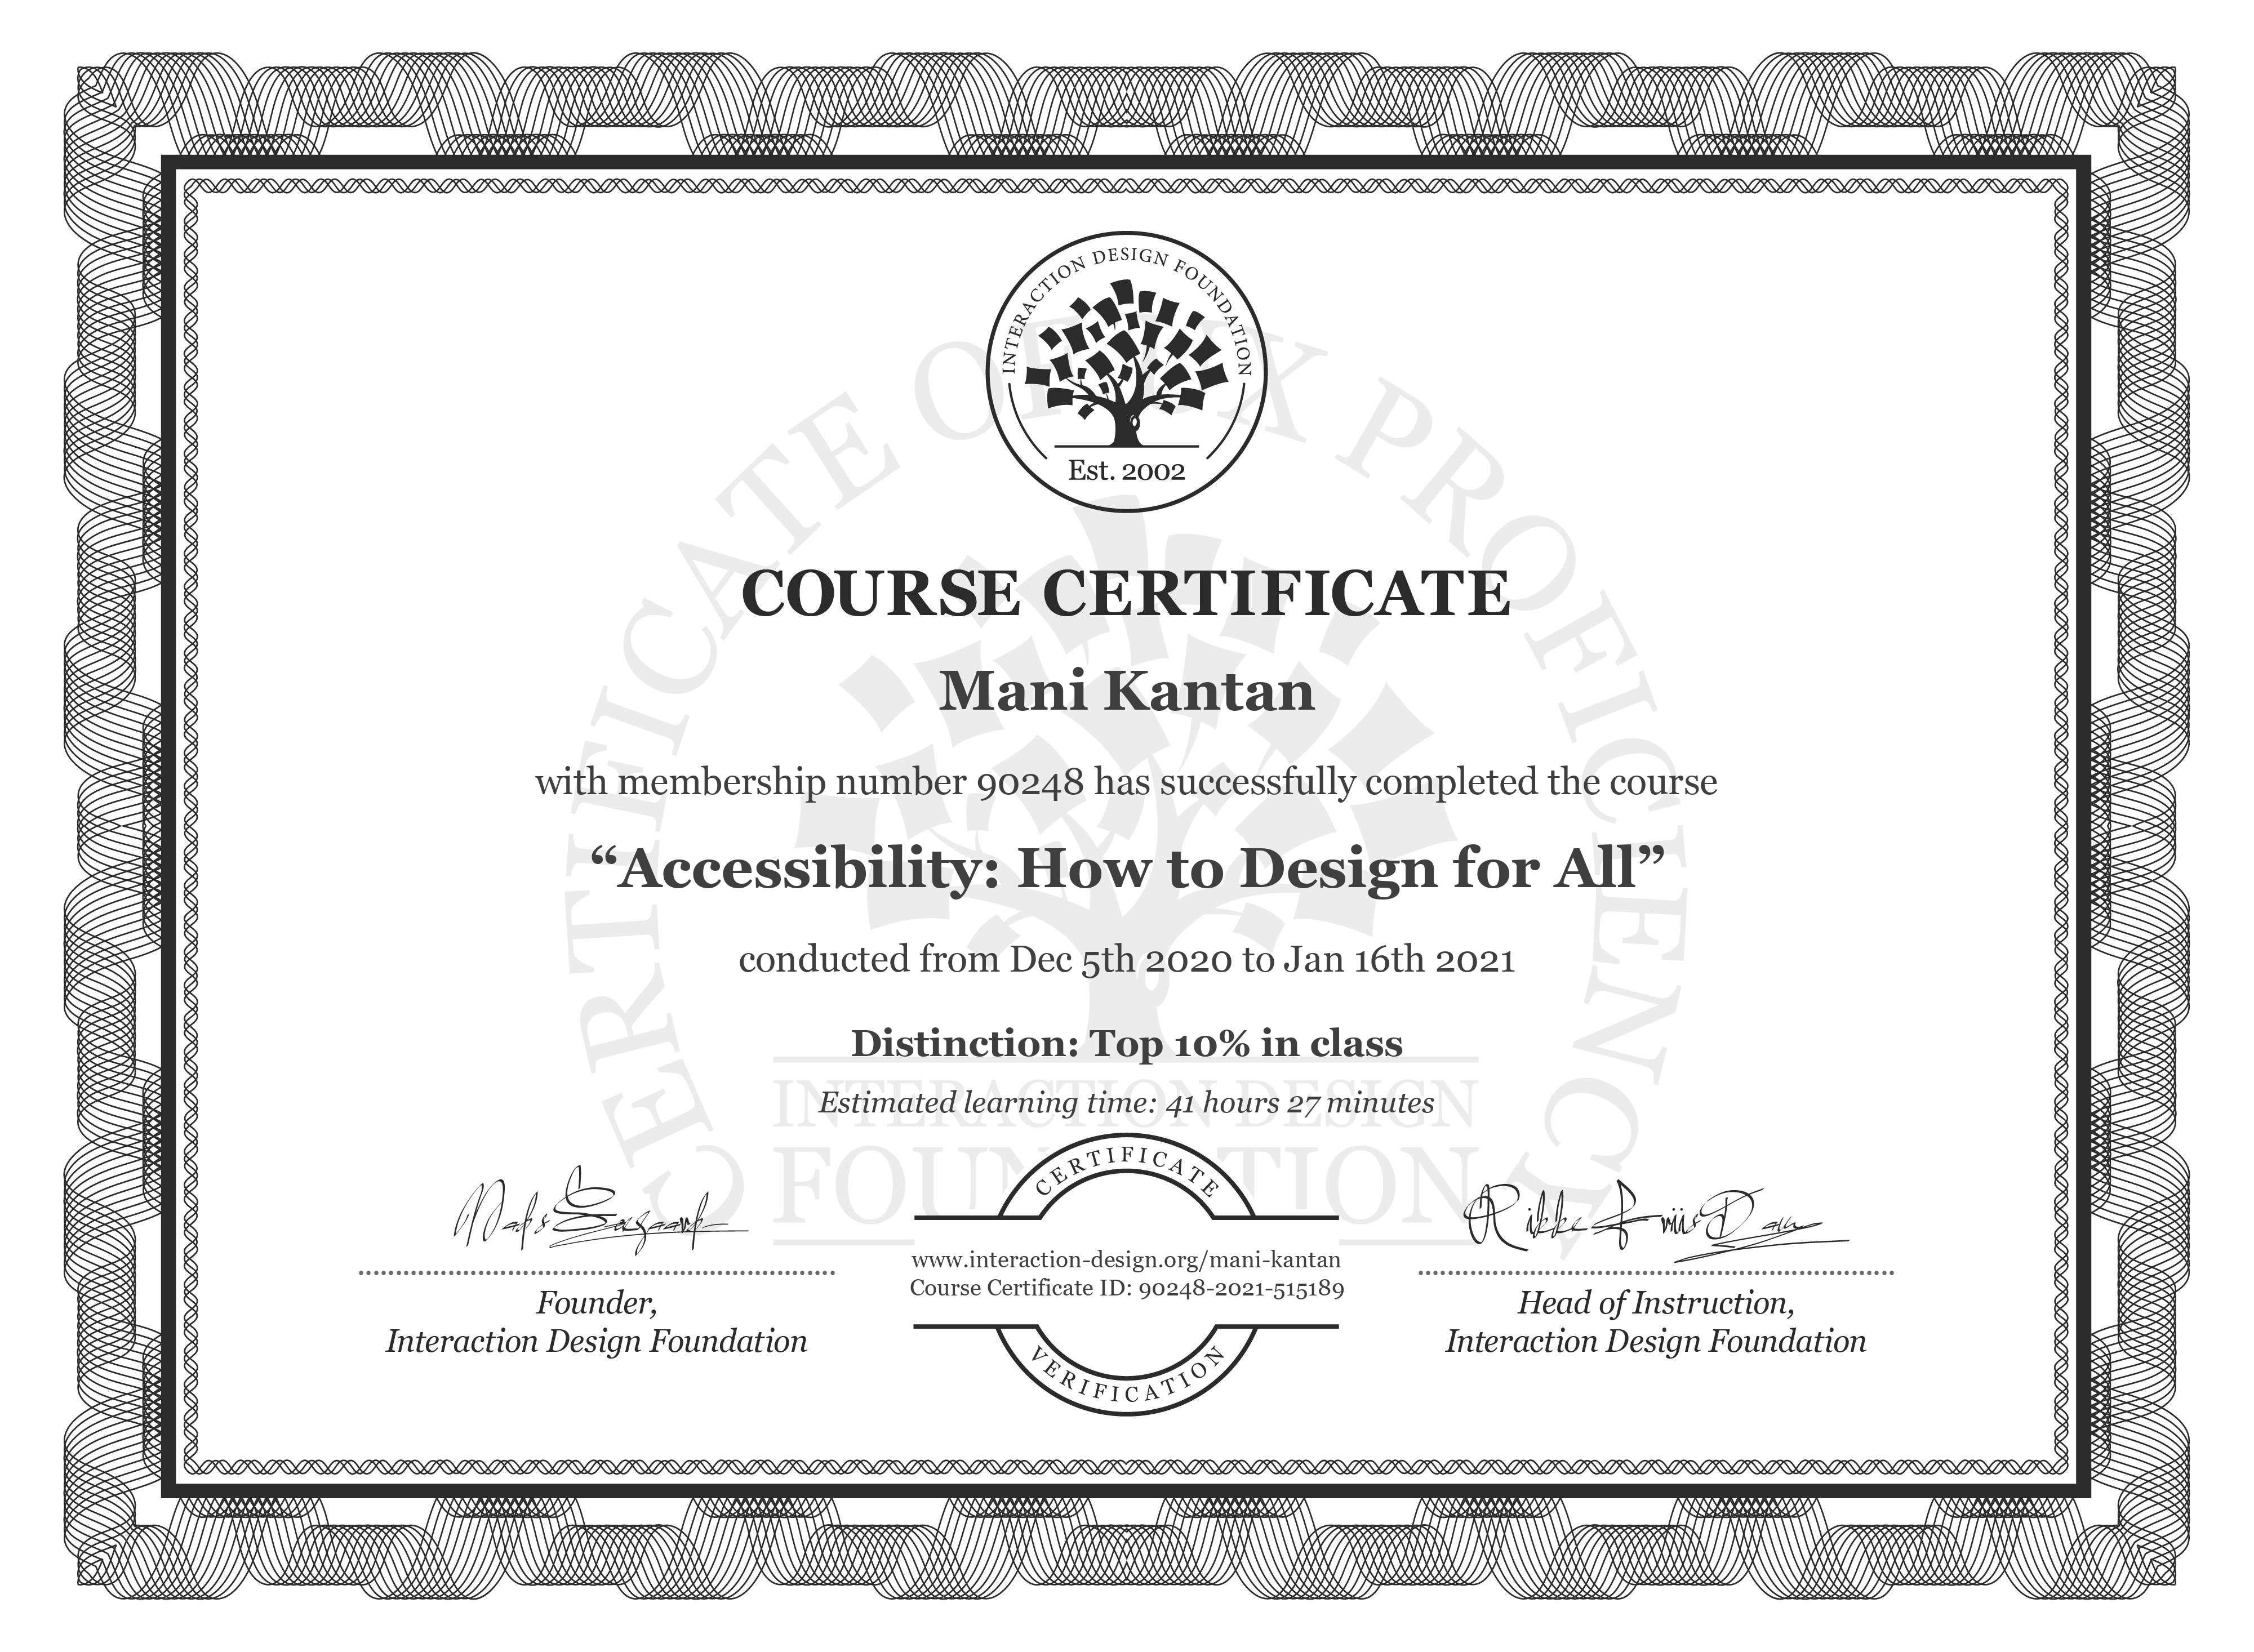 Mani Kantan's Course Certificate: Accessibility: How to Design for All